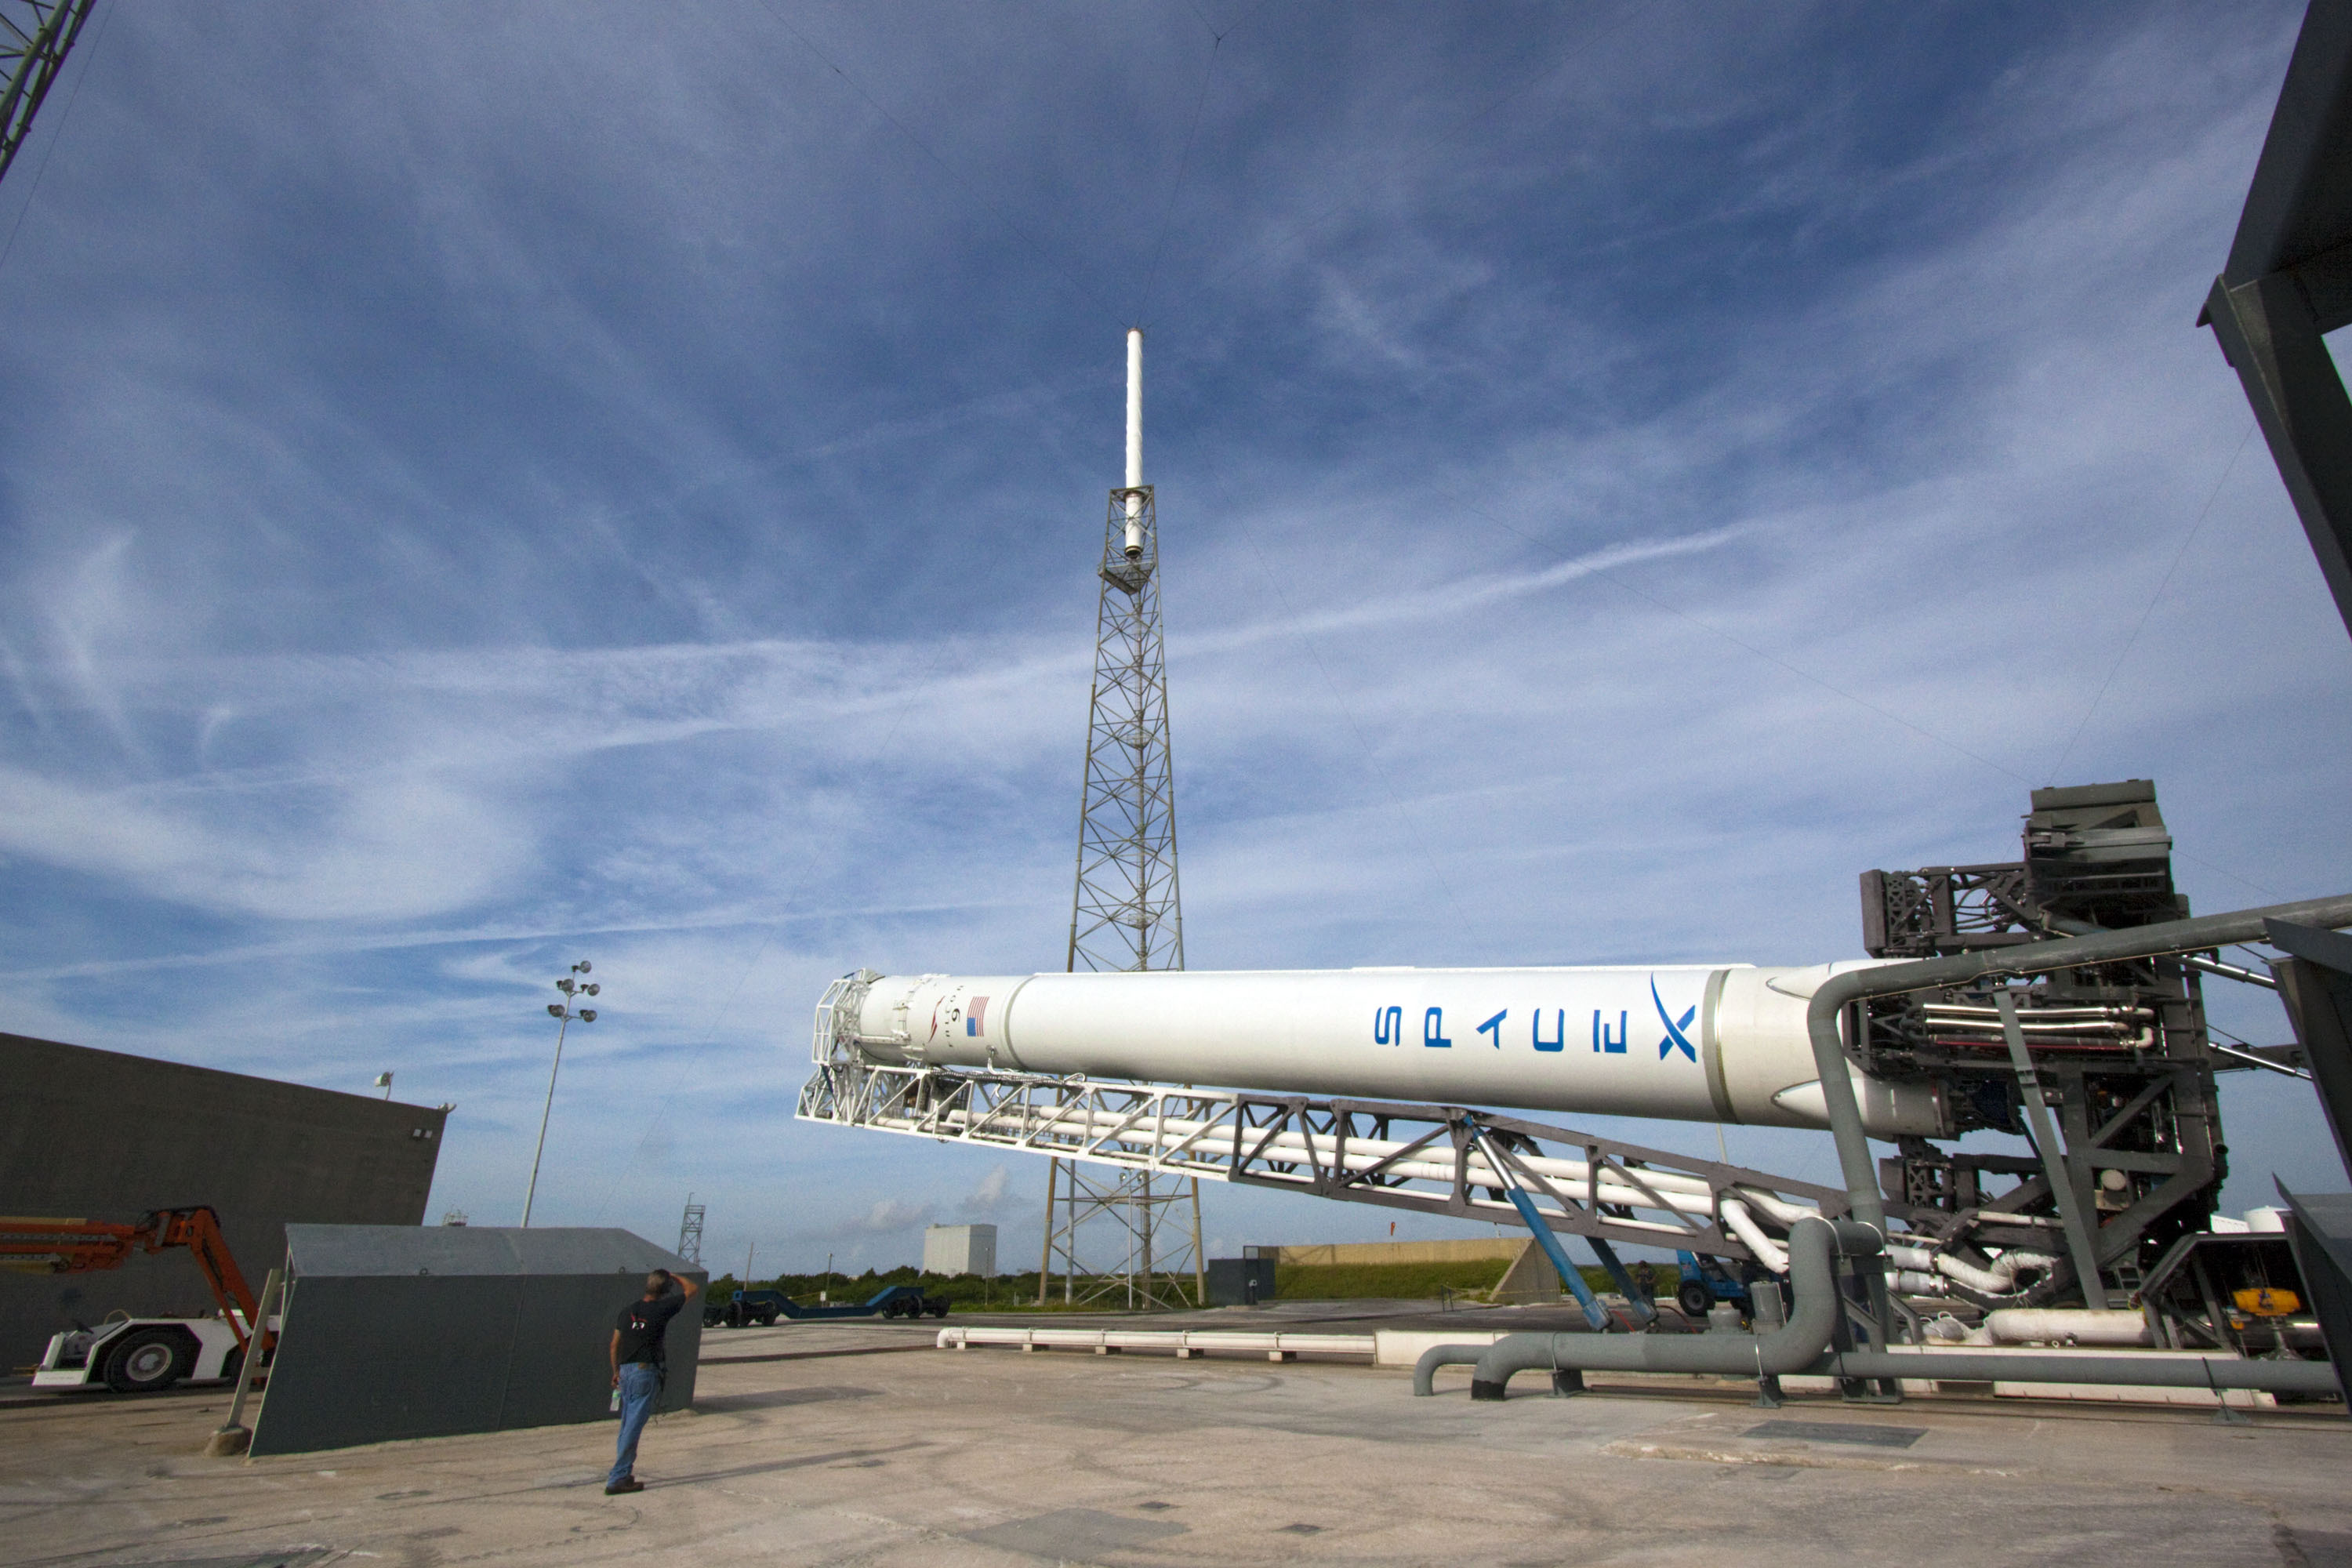 SpaceX's Falcon 9 at Space Launch Complex 40